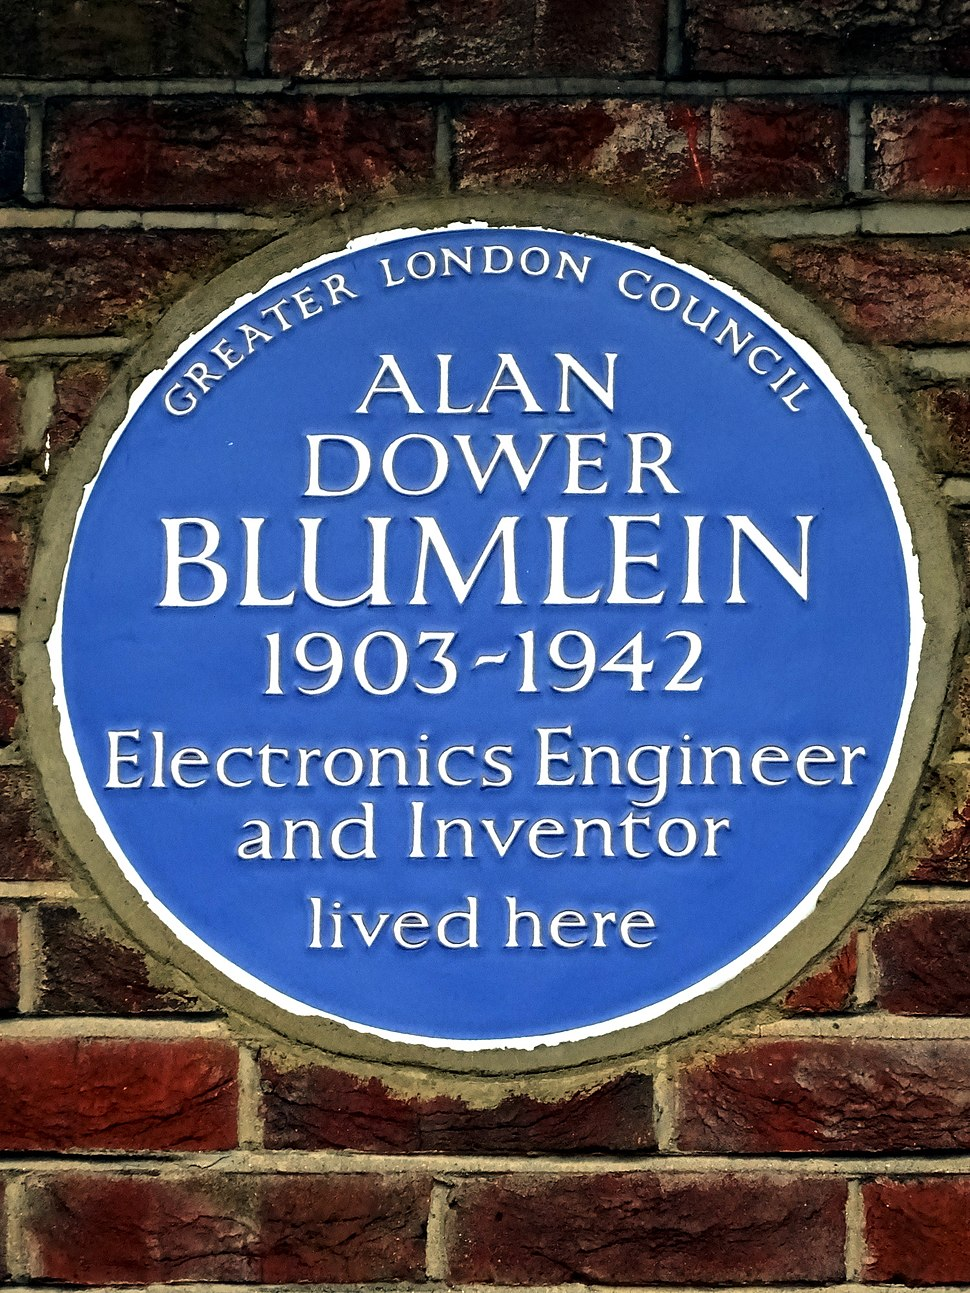 ALAN DOWER BLUMLEIN 1903-1942 Electronics Engineer and Inventor lived here